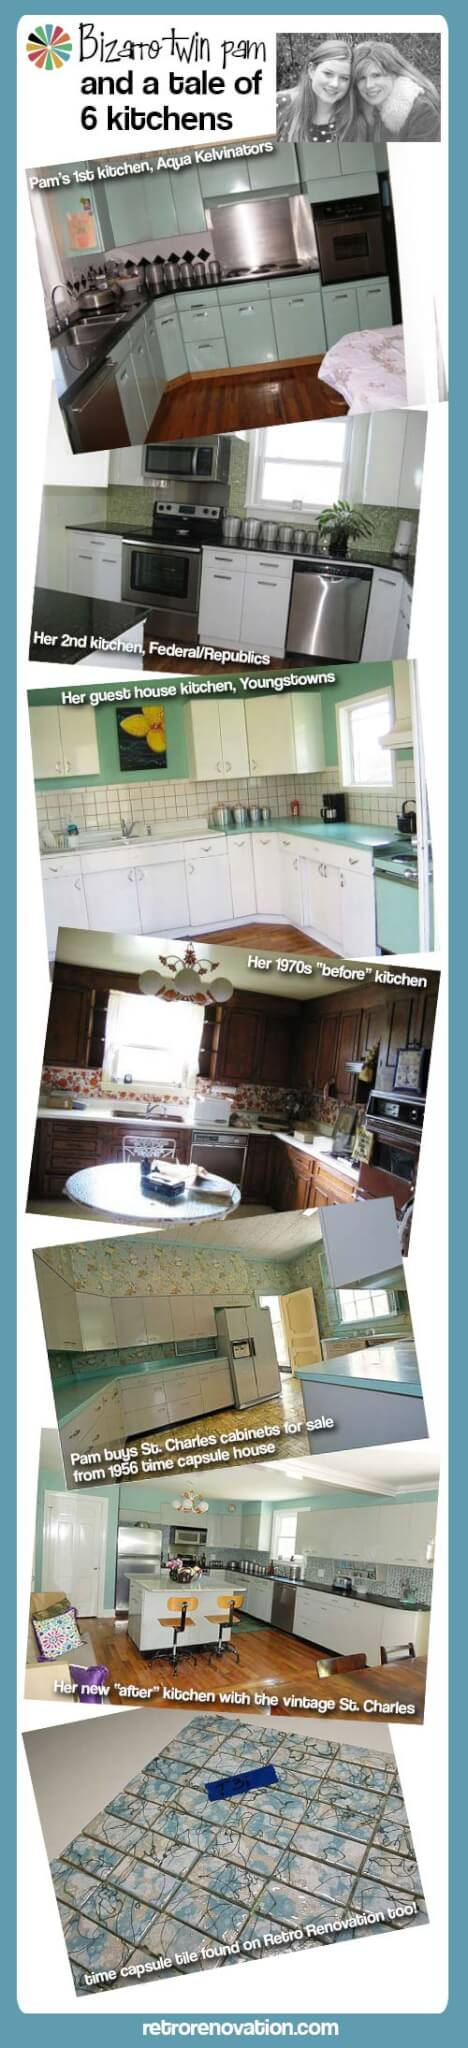 six kitchen renovations